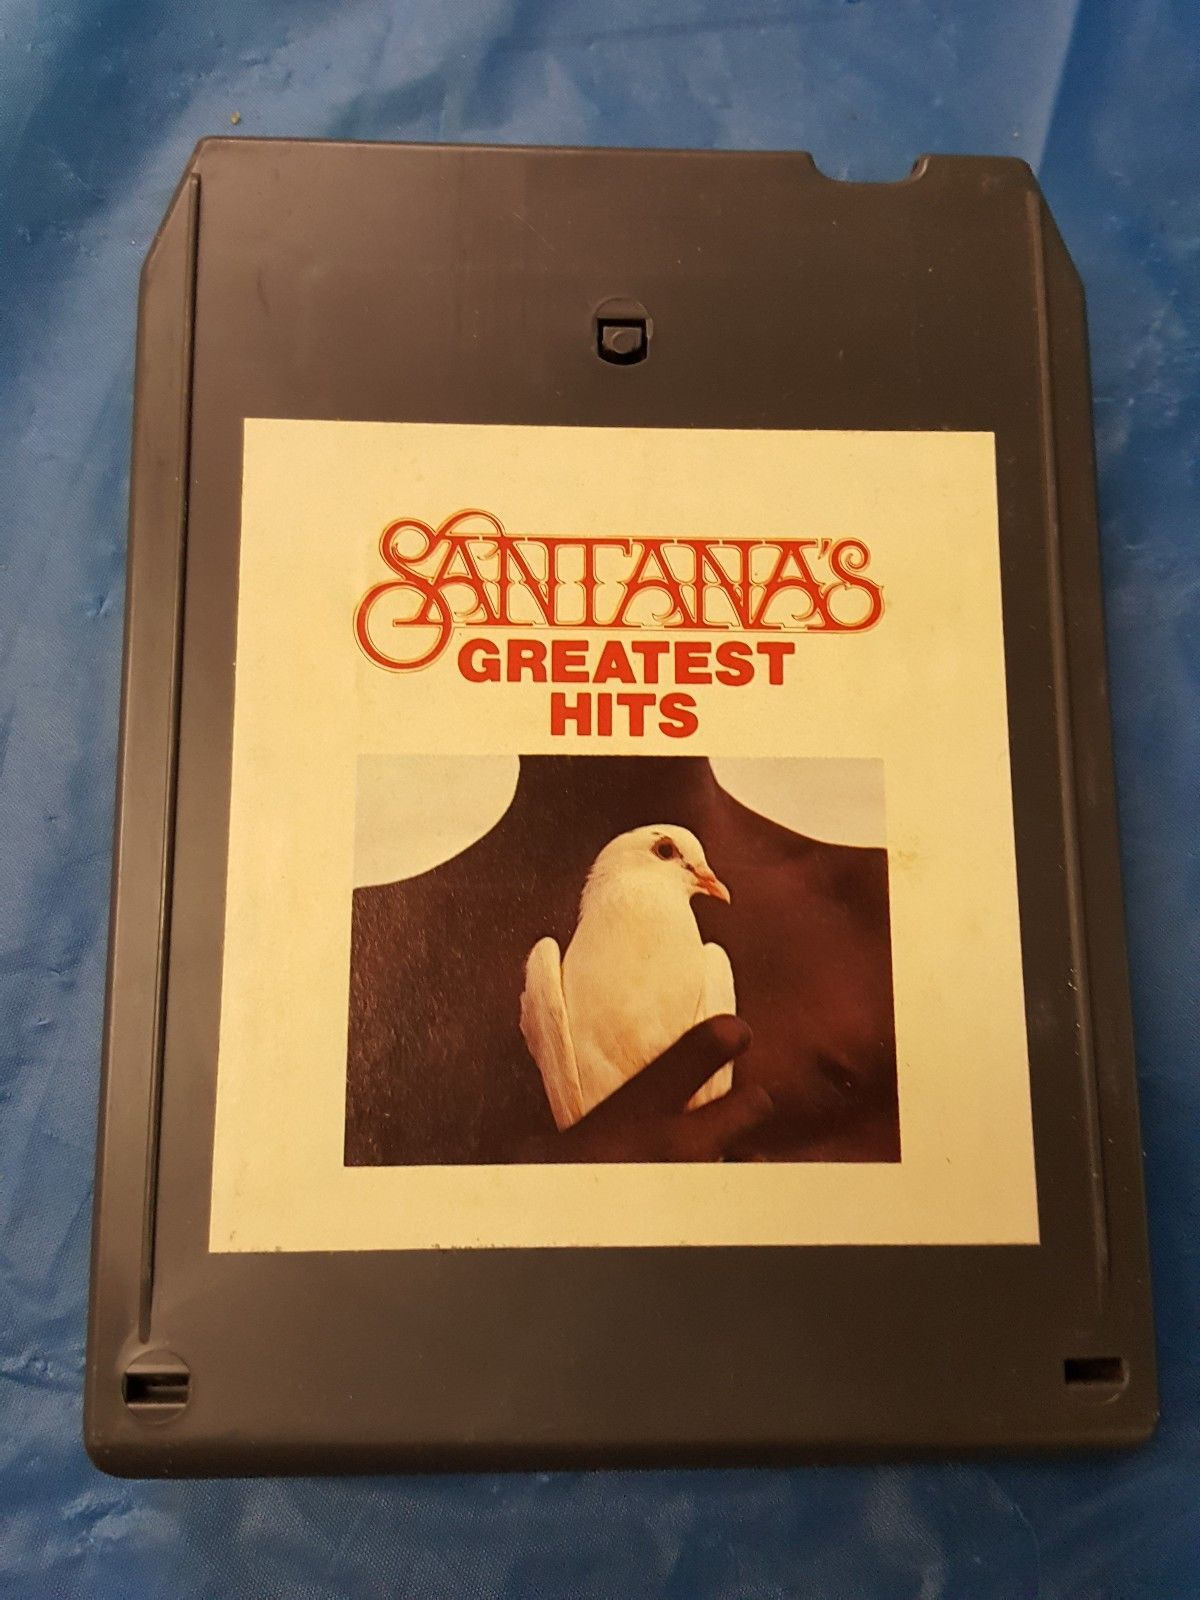 Santanas Greatest Hits 8 Track Tape And Similar Items S L1600